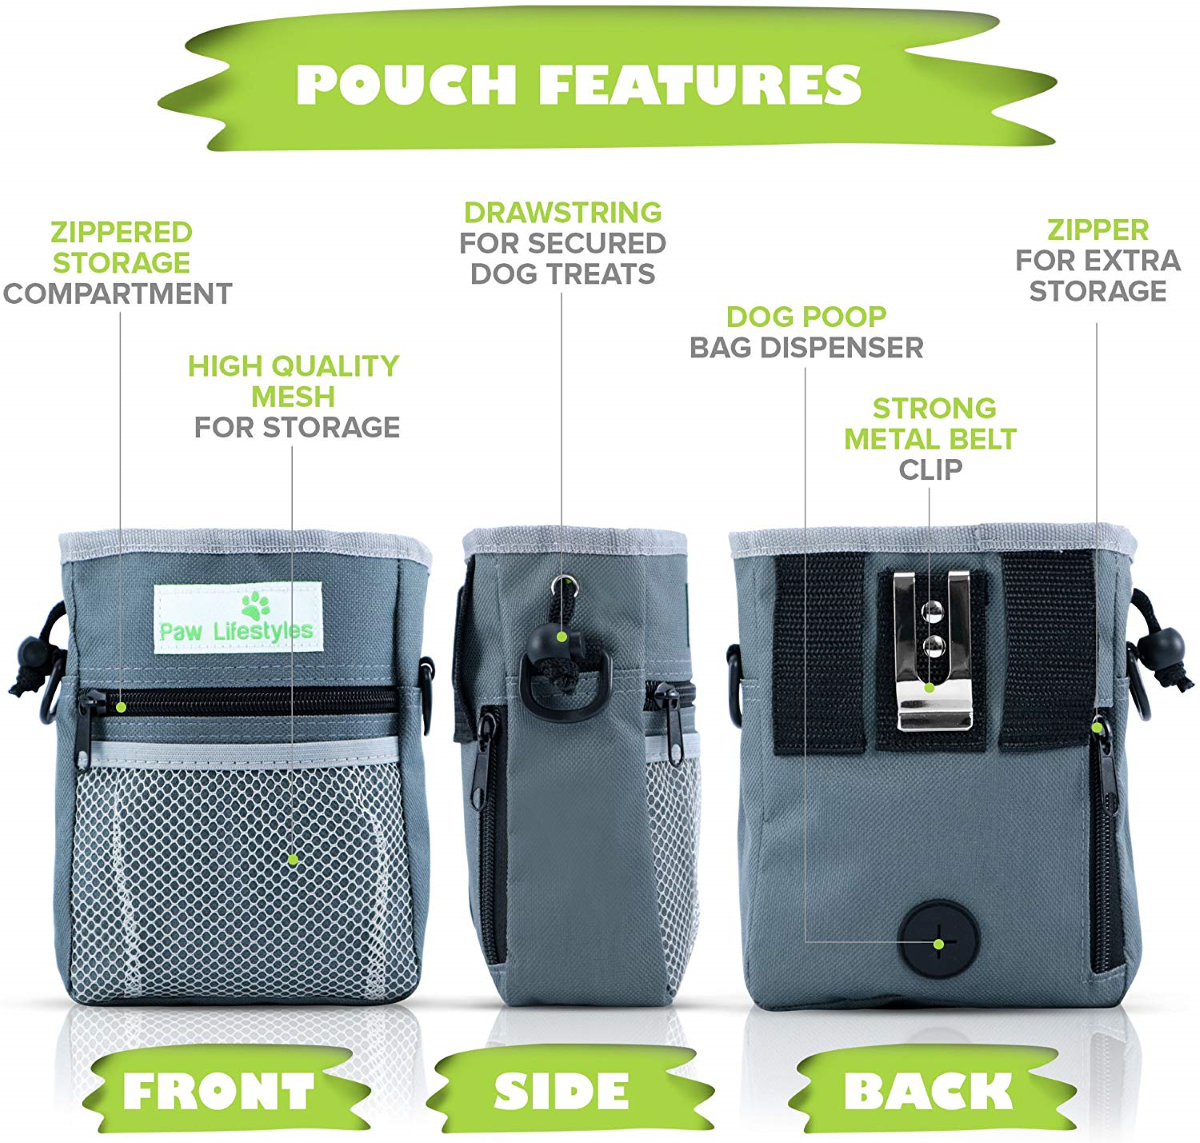 Front, Middle, Side and Back Compartments & Utility Features